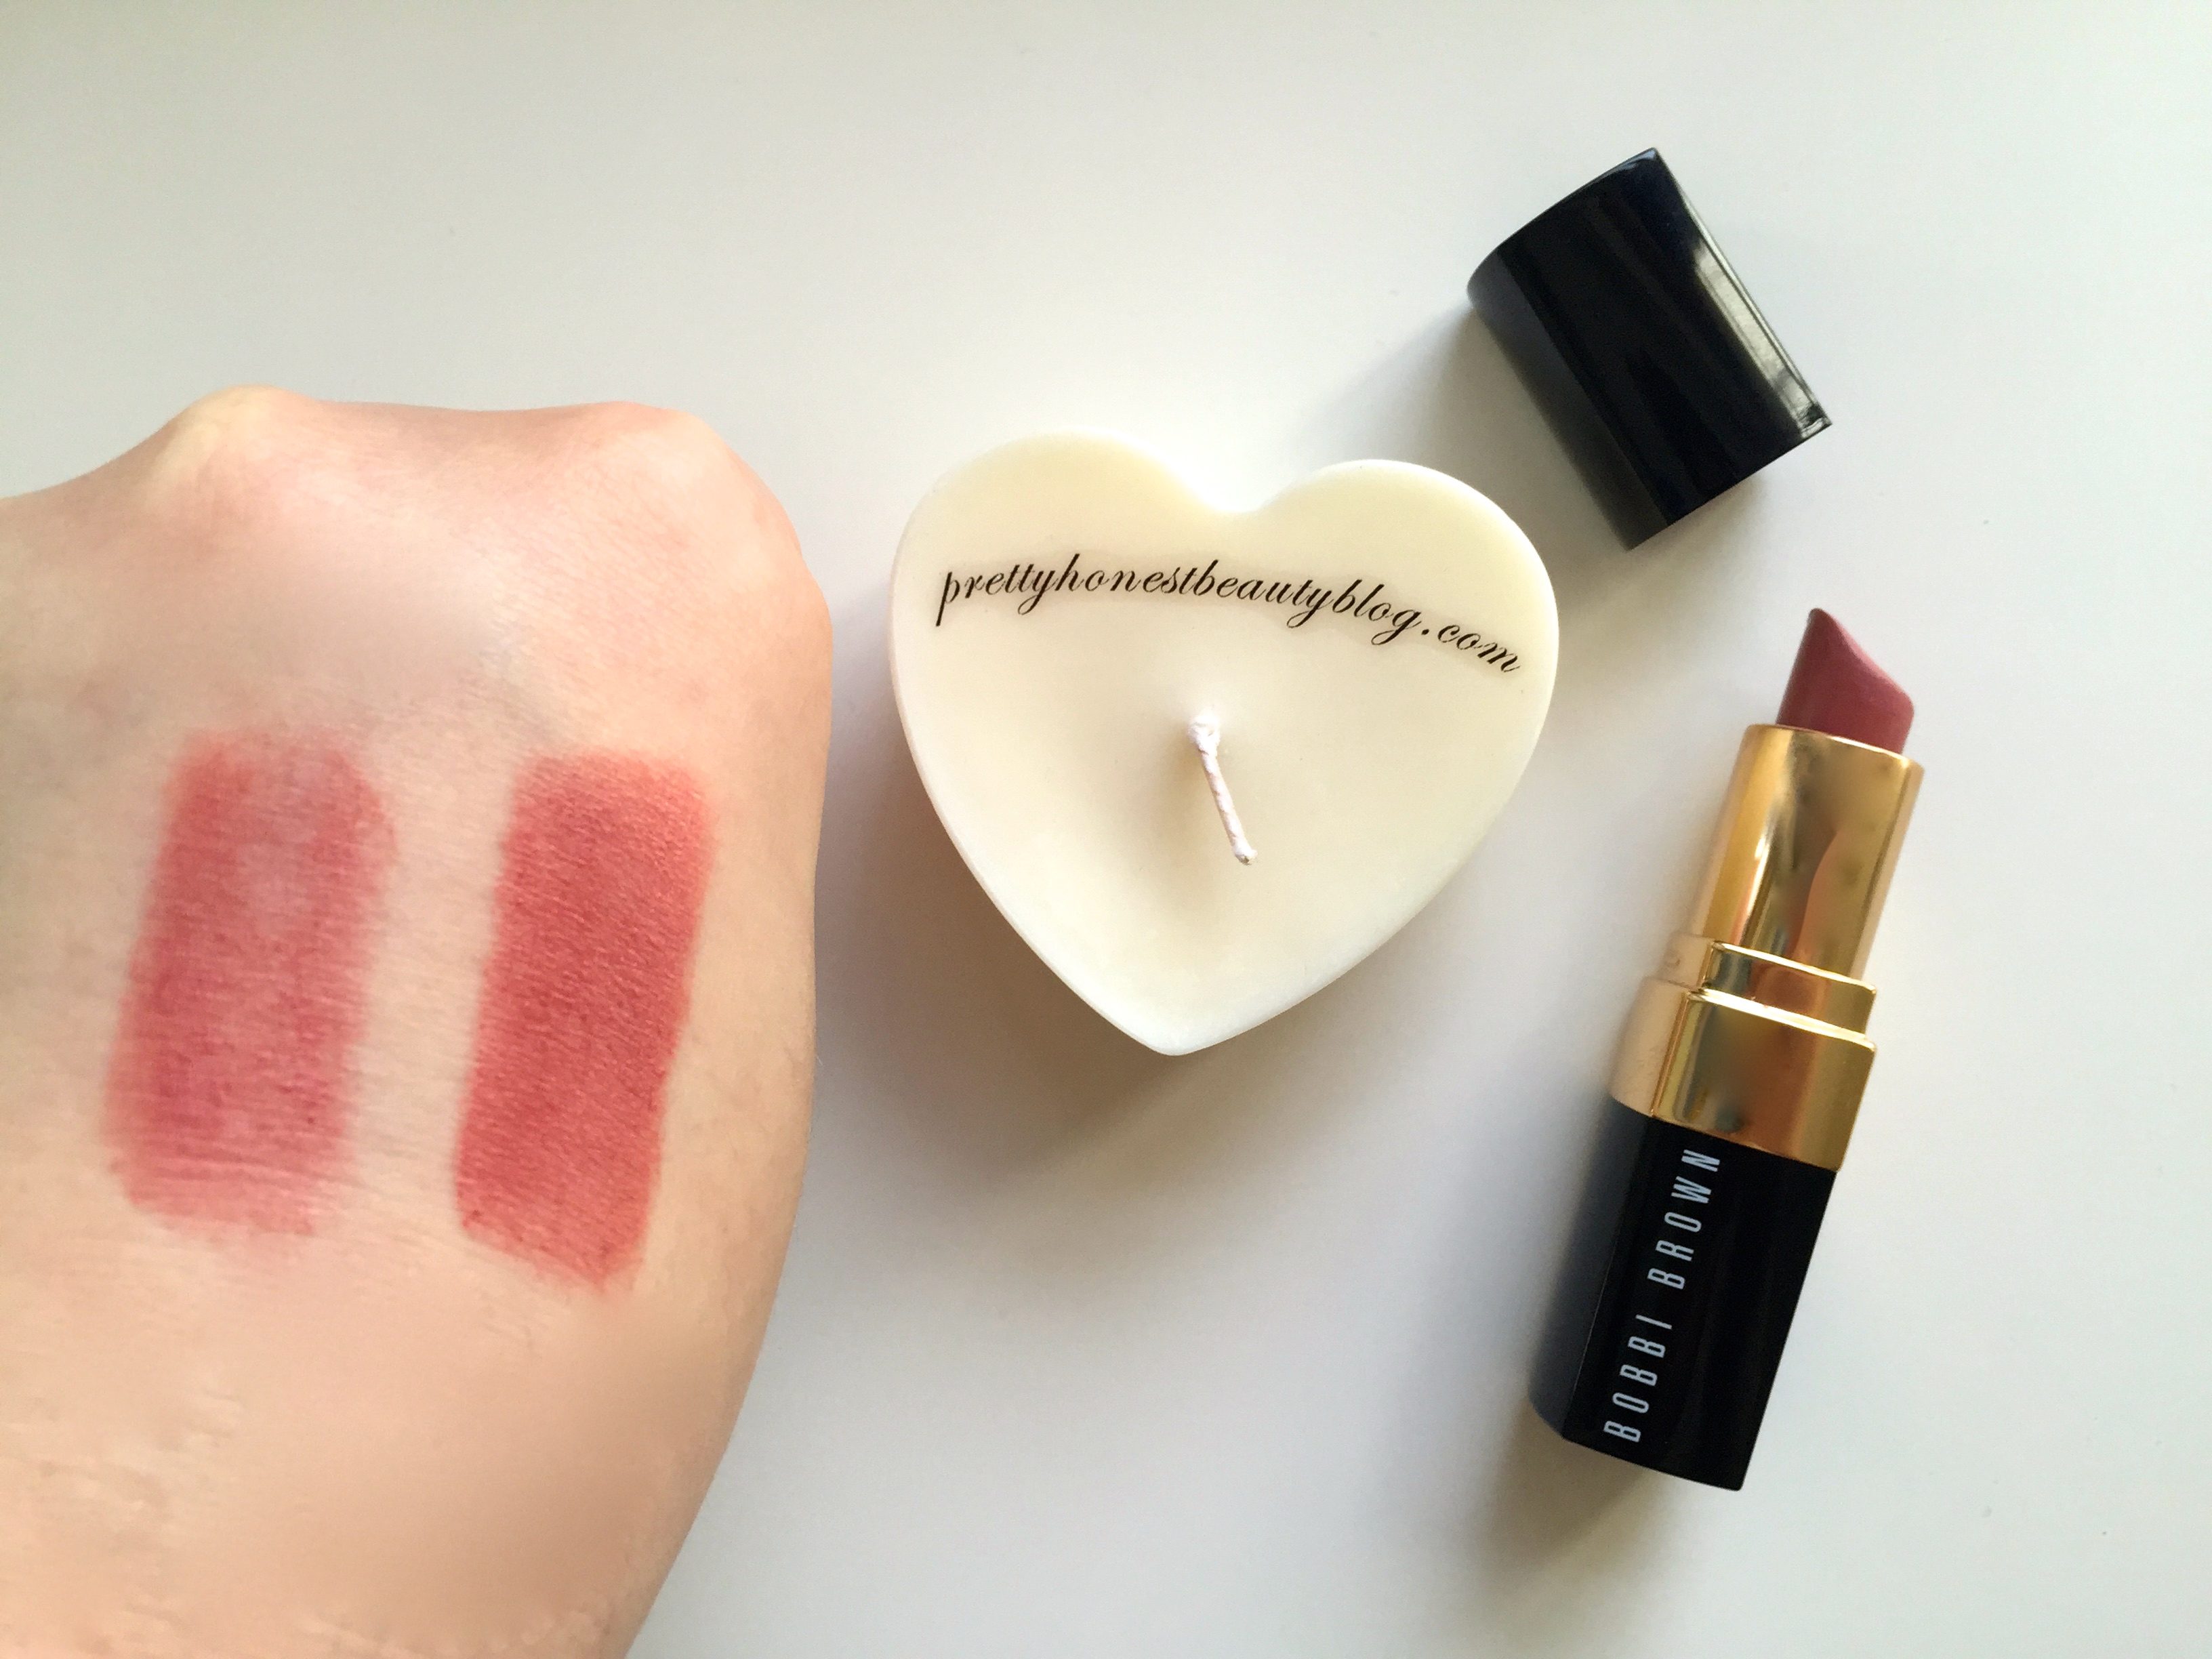 Bobbi Brown Sandwash Pink Lipstick Review photos